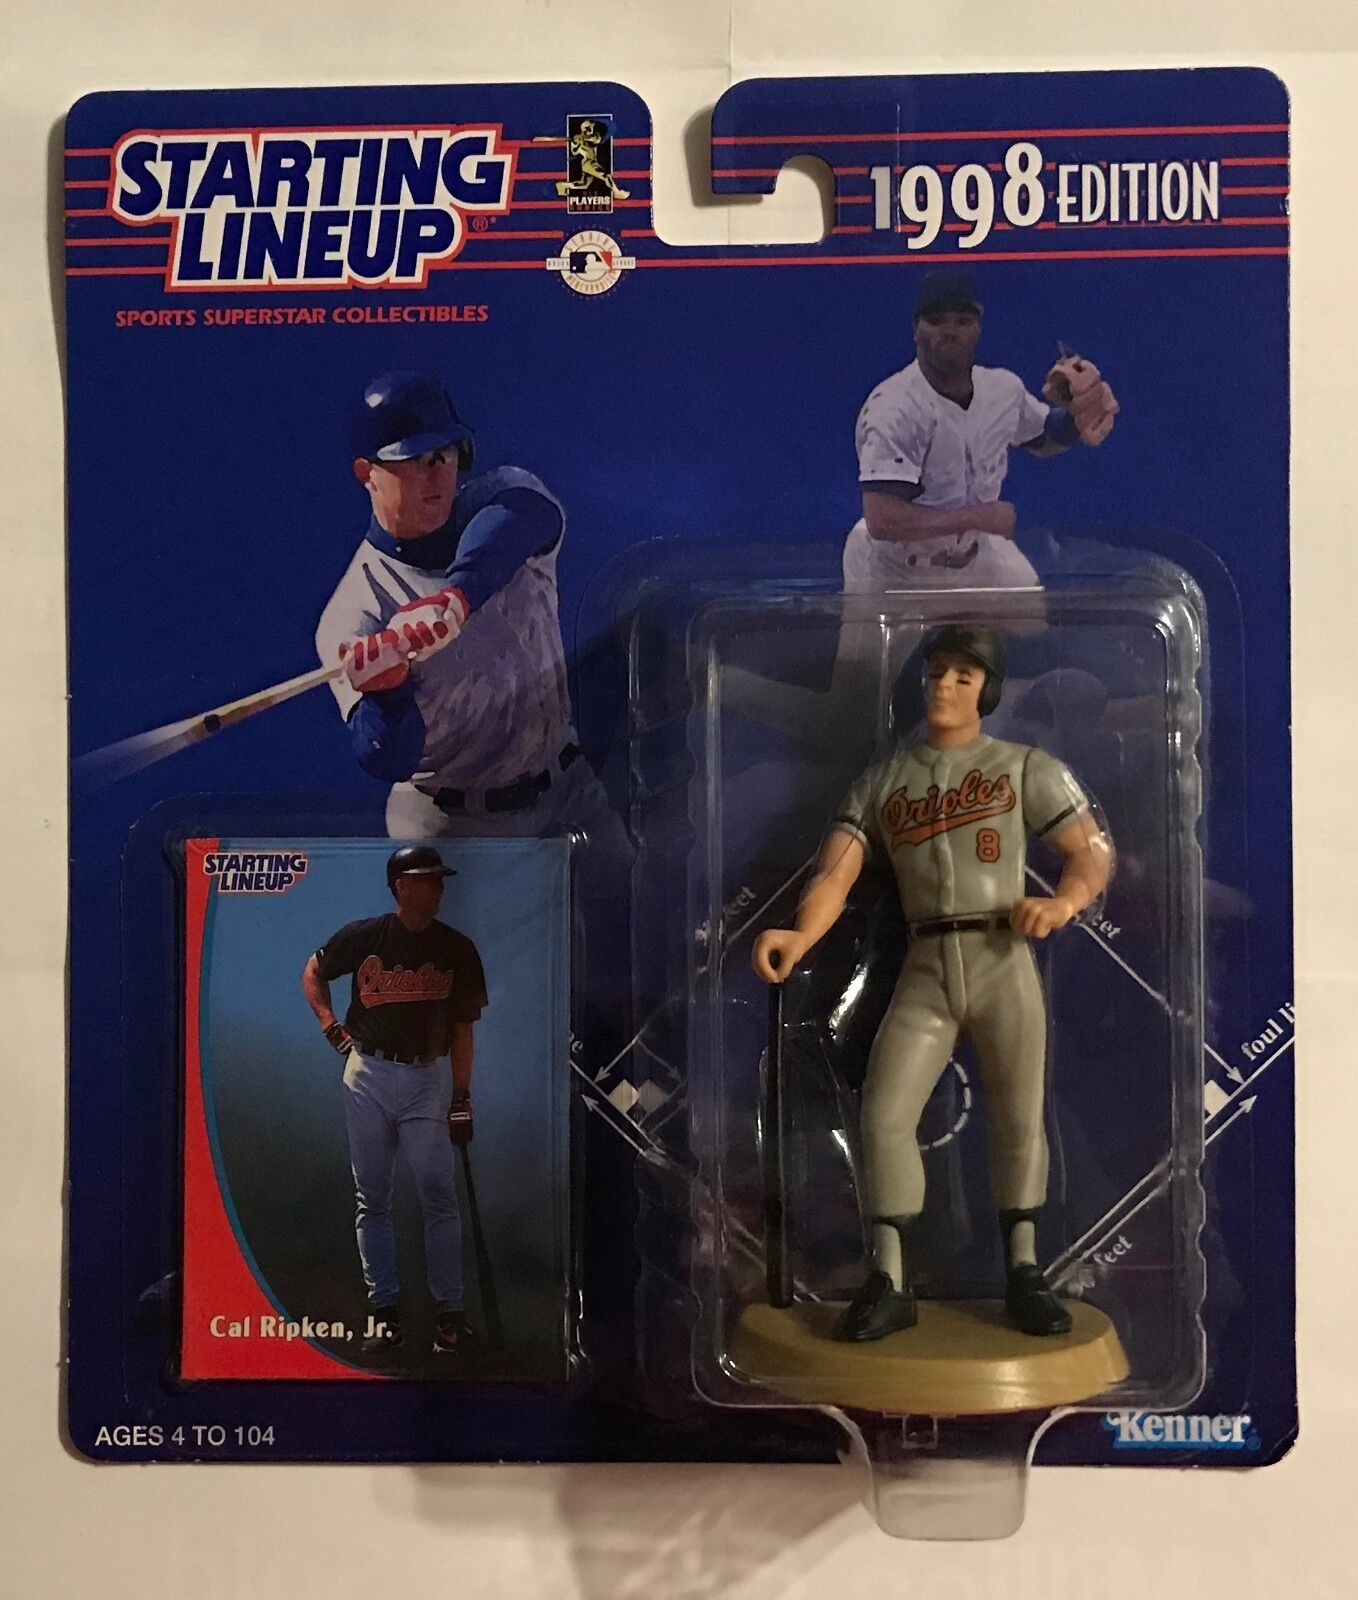 1998 STARTING LINEUP - CAL RIPKIN, JR. - ORIOLES - ACTION FIGURE